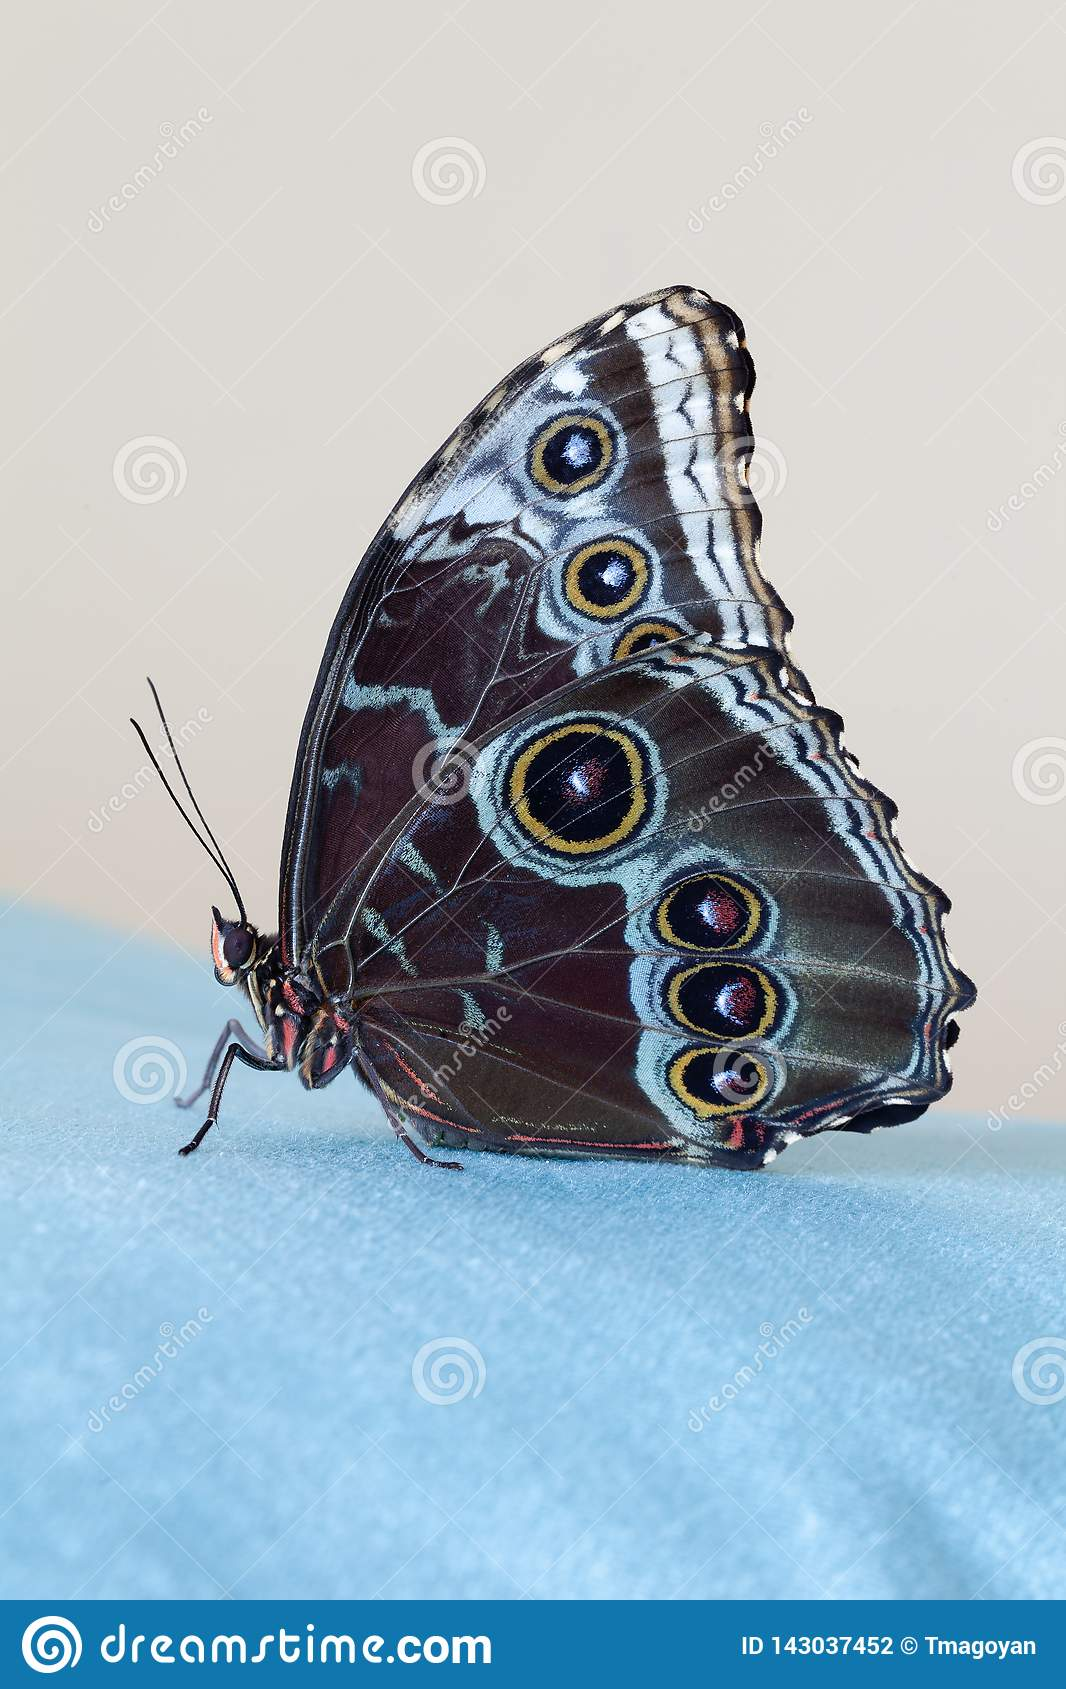 Butterfly blue morpho sitting on a blue velvet cloth, on a beige backgound. Closeup. Macro photo